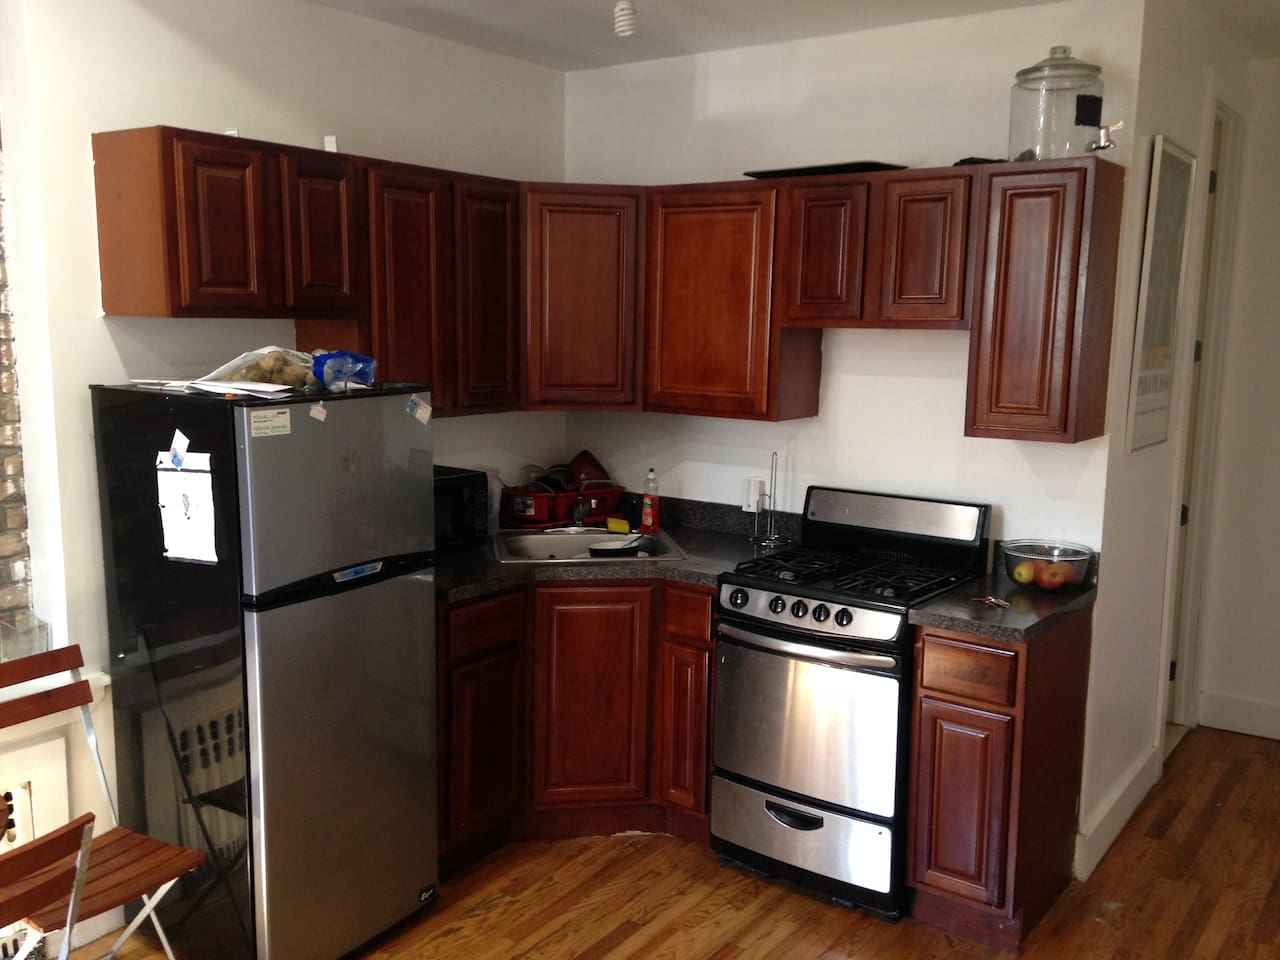 Kitchenette area. Cook at your leisure.